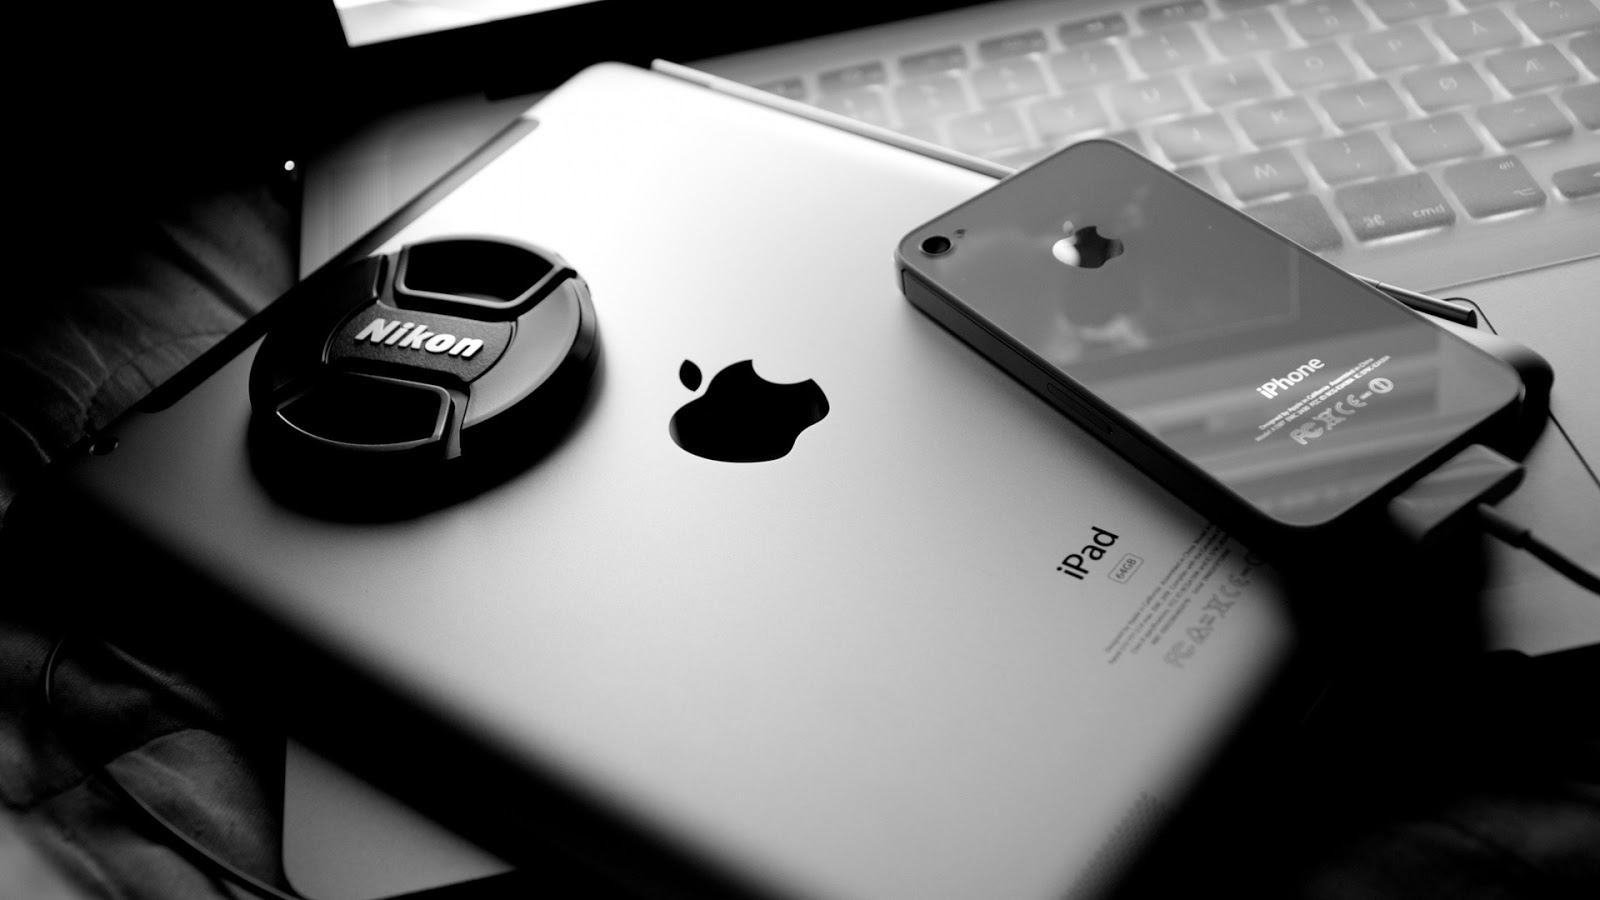 Apple Gear and Nikon in Black and White